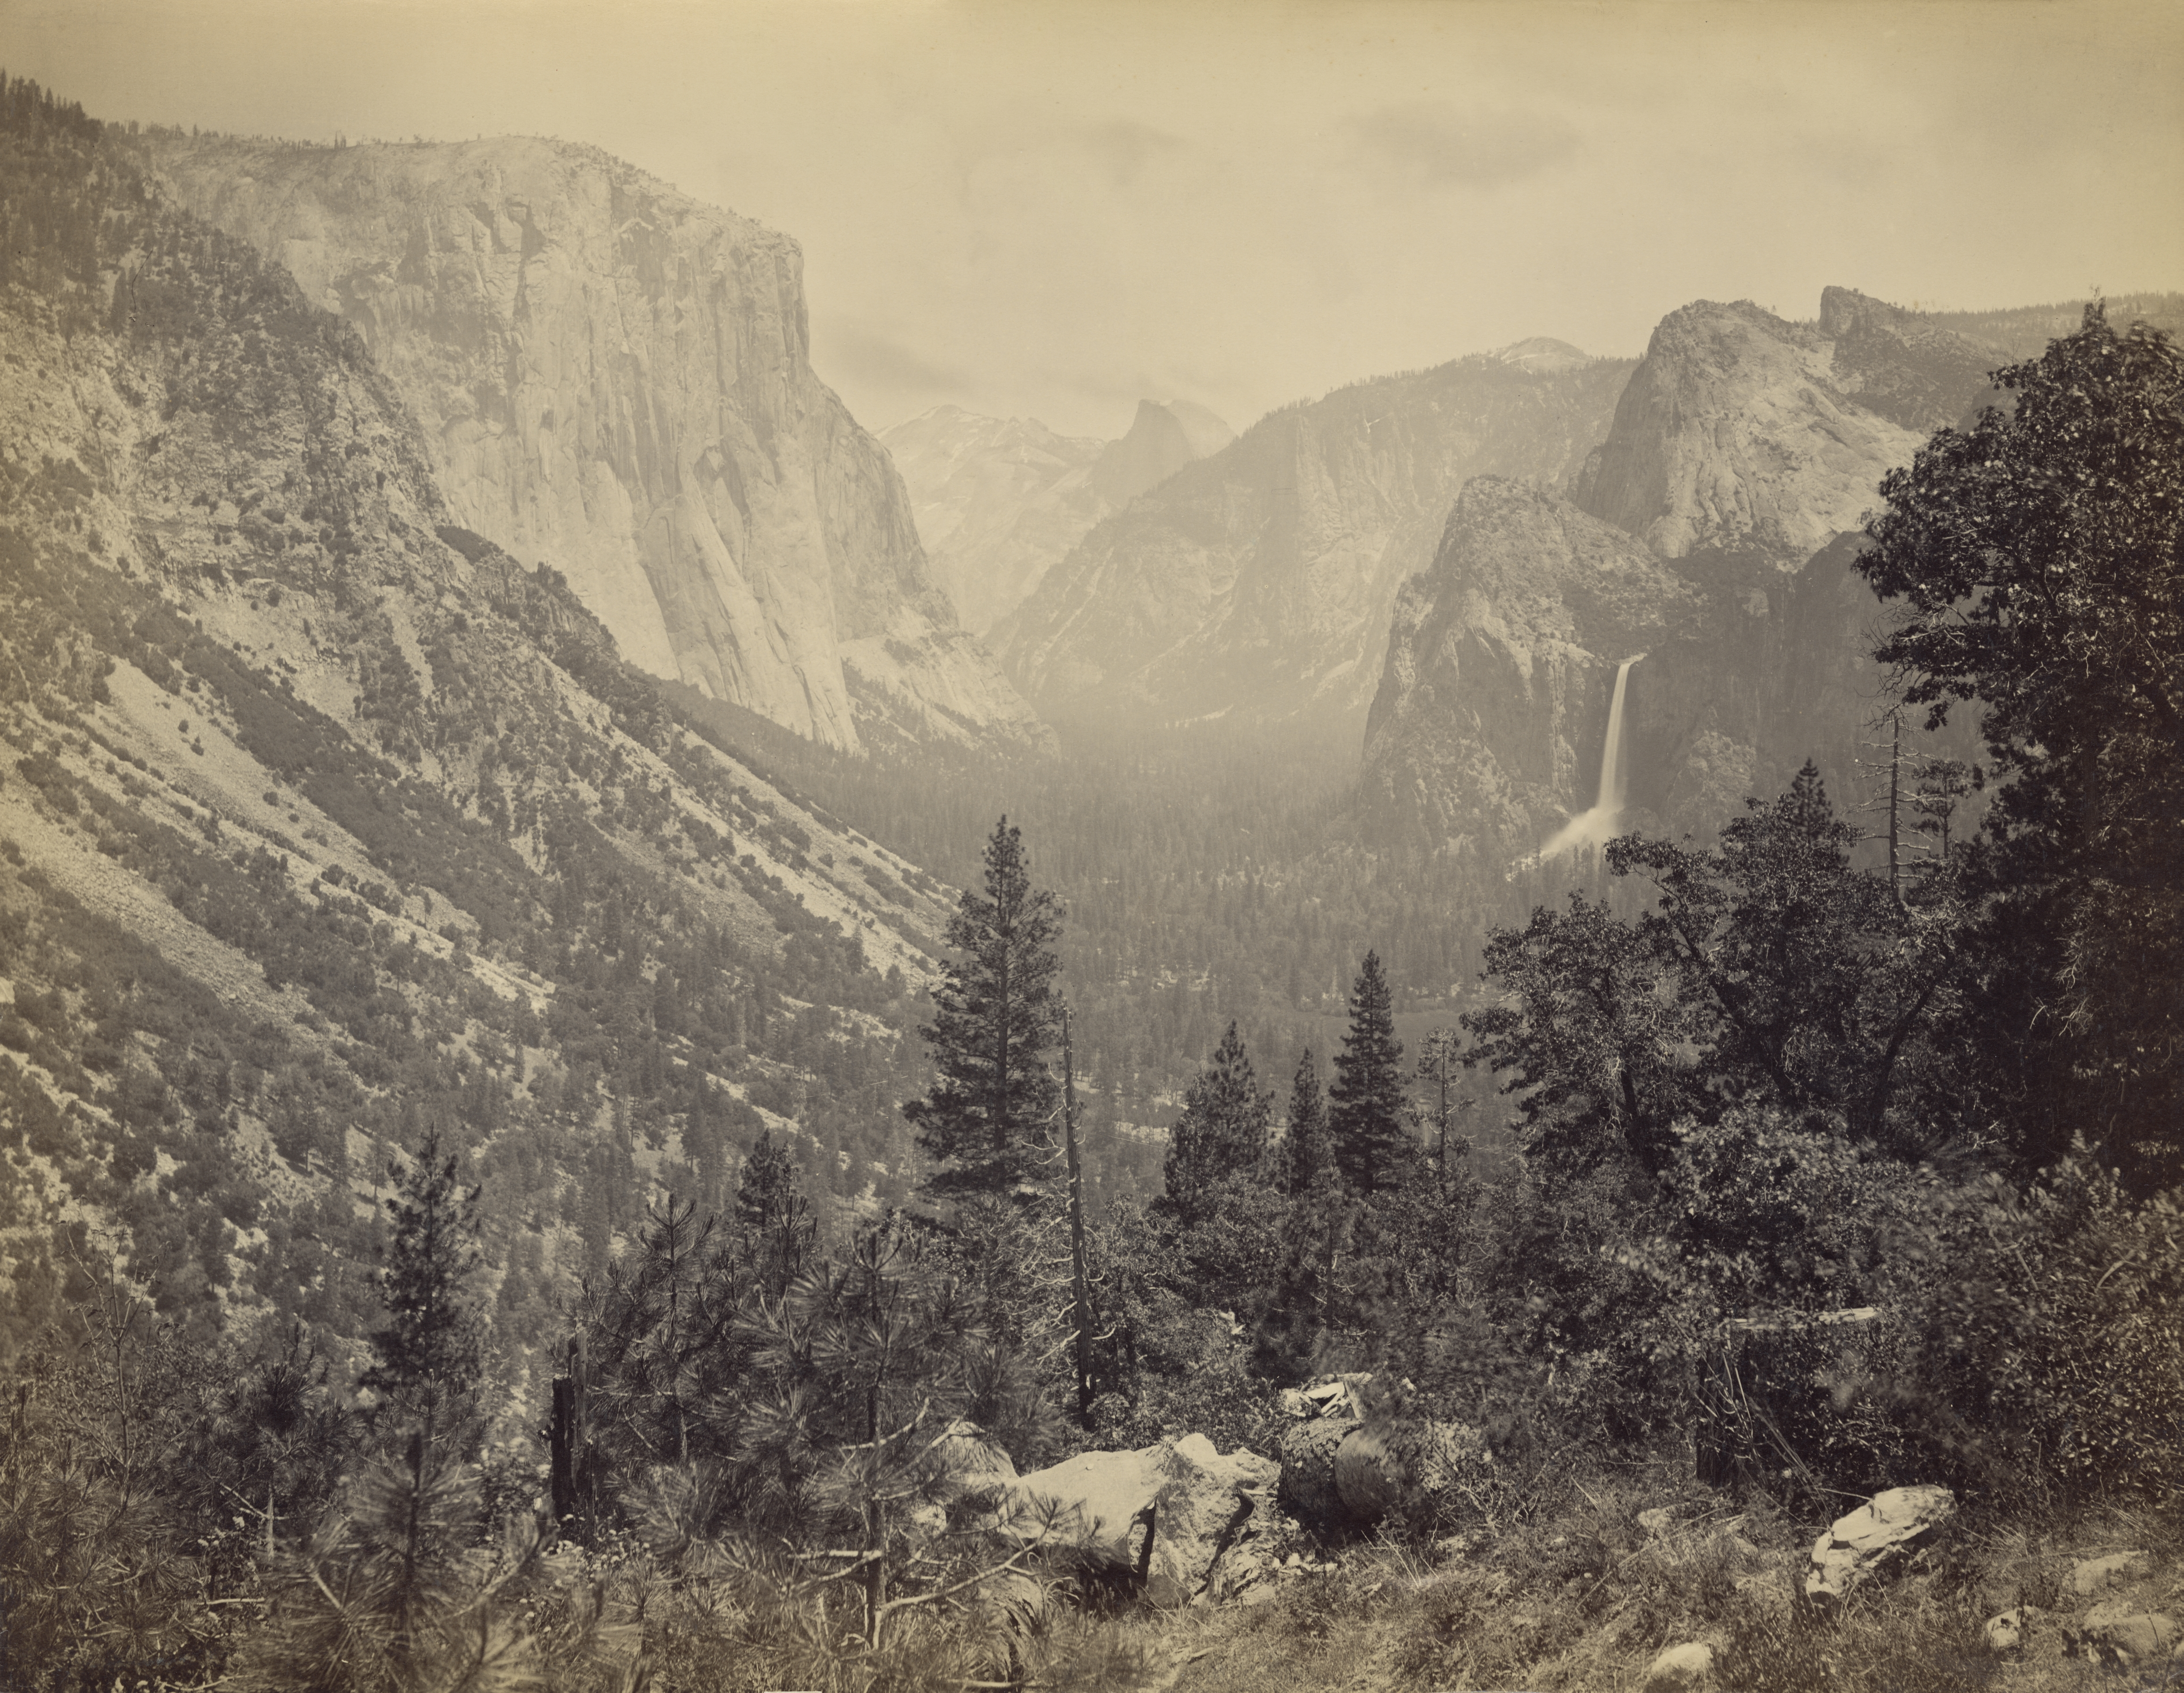 Looking east up Yosemite Valley from Artist Point, Yosemite National Park, California, circa 1865.  (Getty)